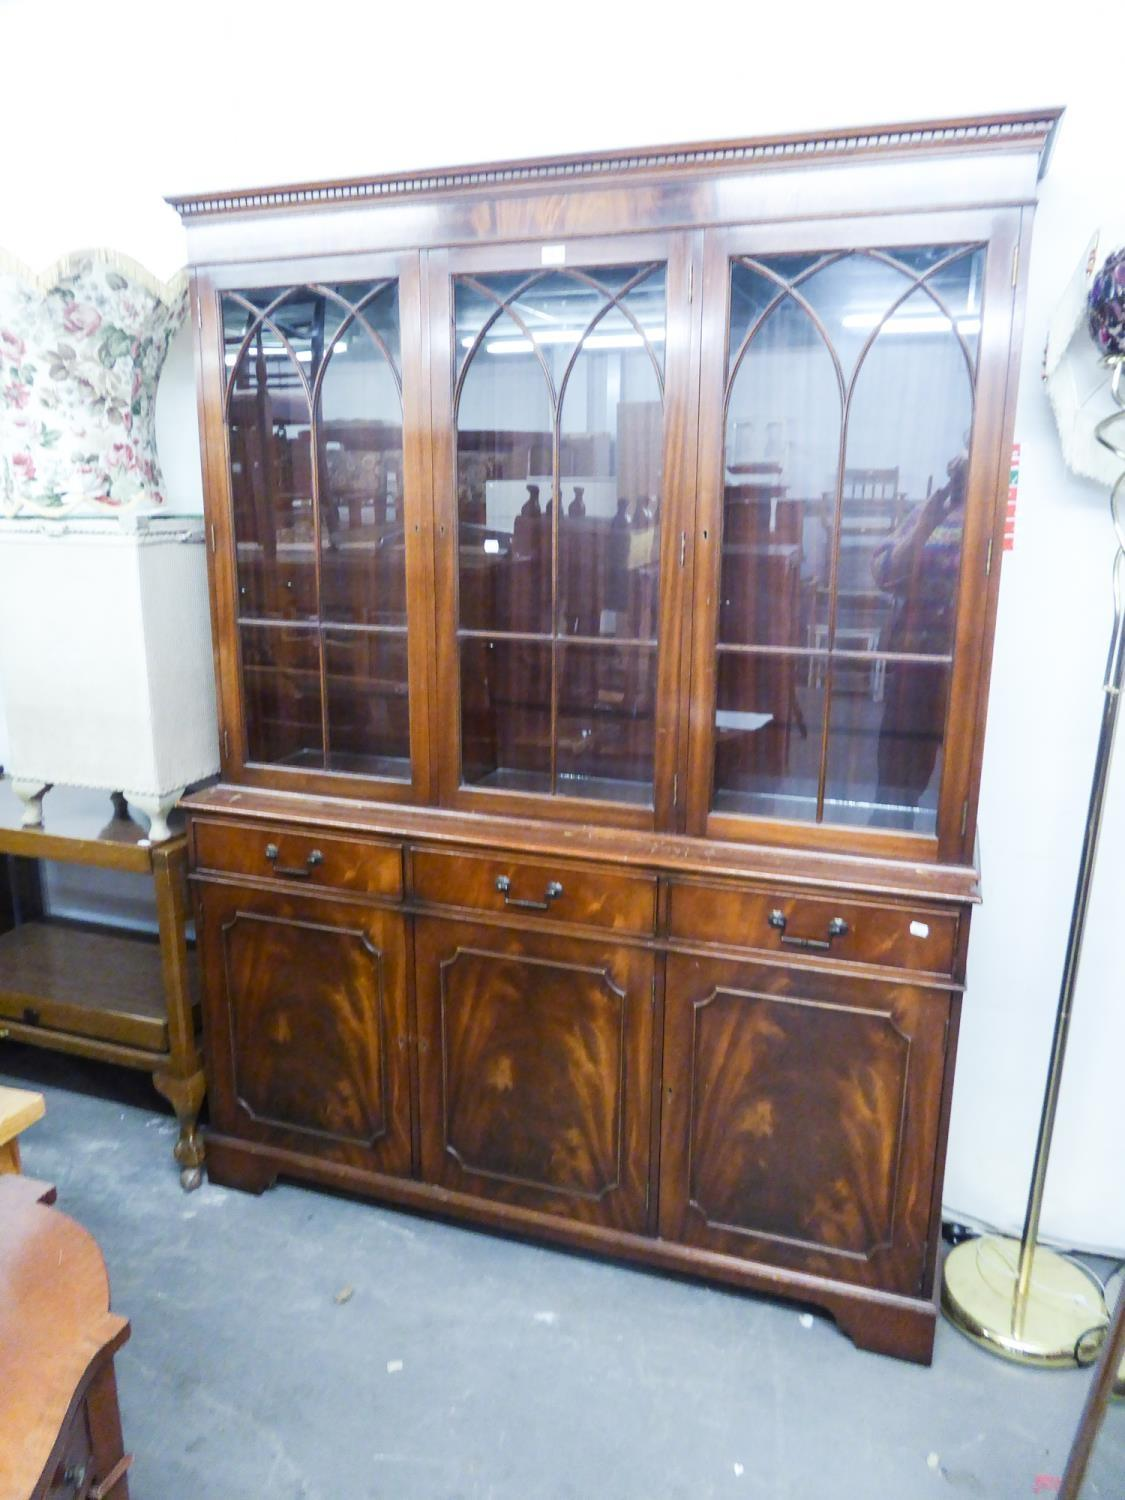 Lot 75 - A MODERN REPRODUCTION MAHOGANY BOOKCASE, WITH ASTRAGAL GLASS UPPER SECTION, DRAWERS AND CUPBOARDS